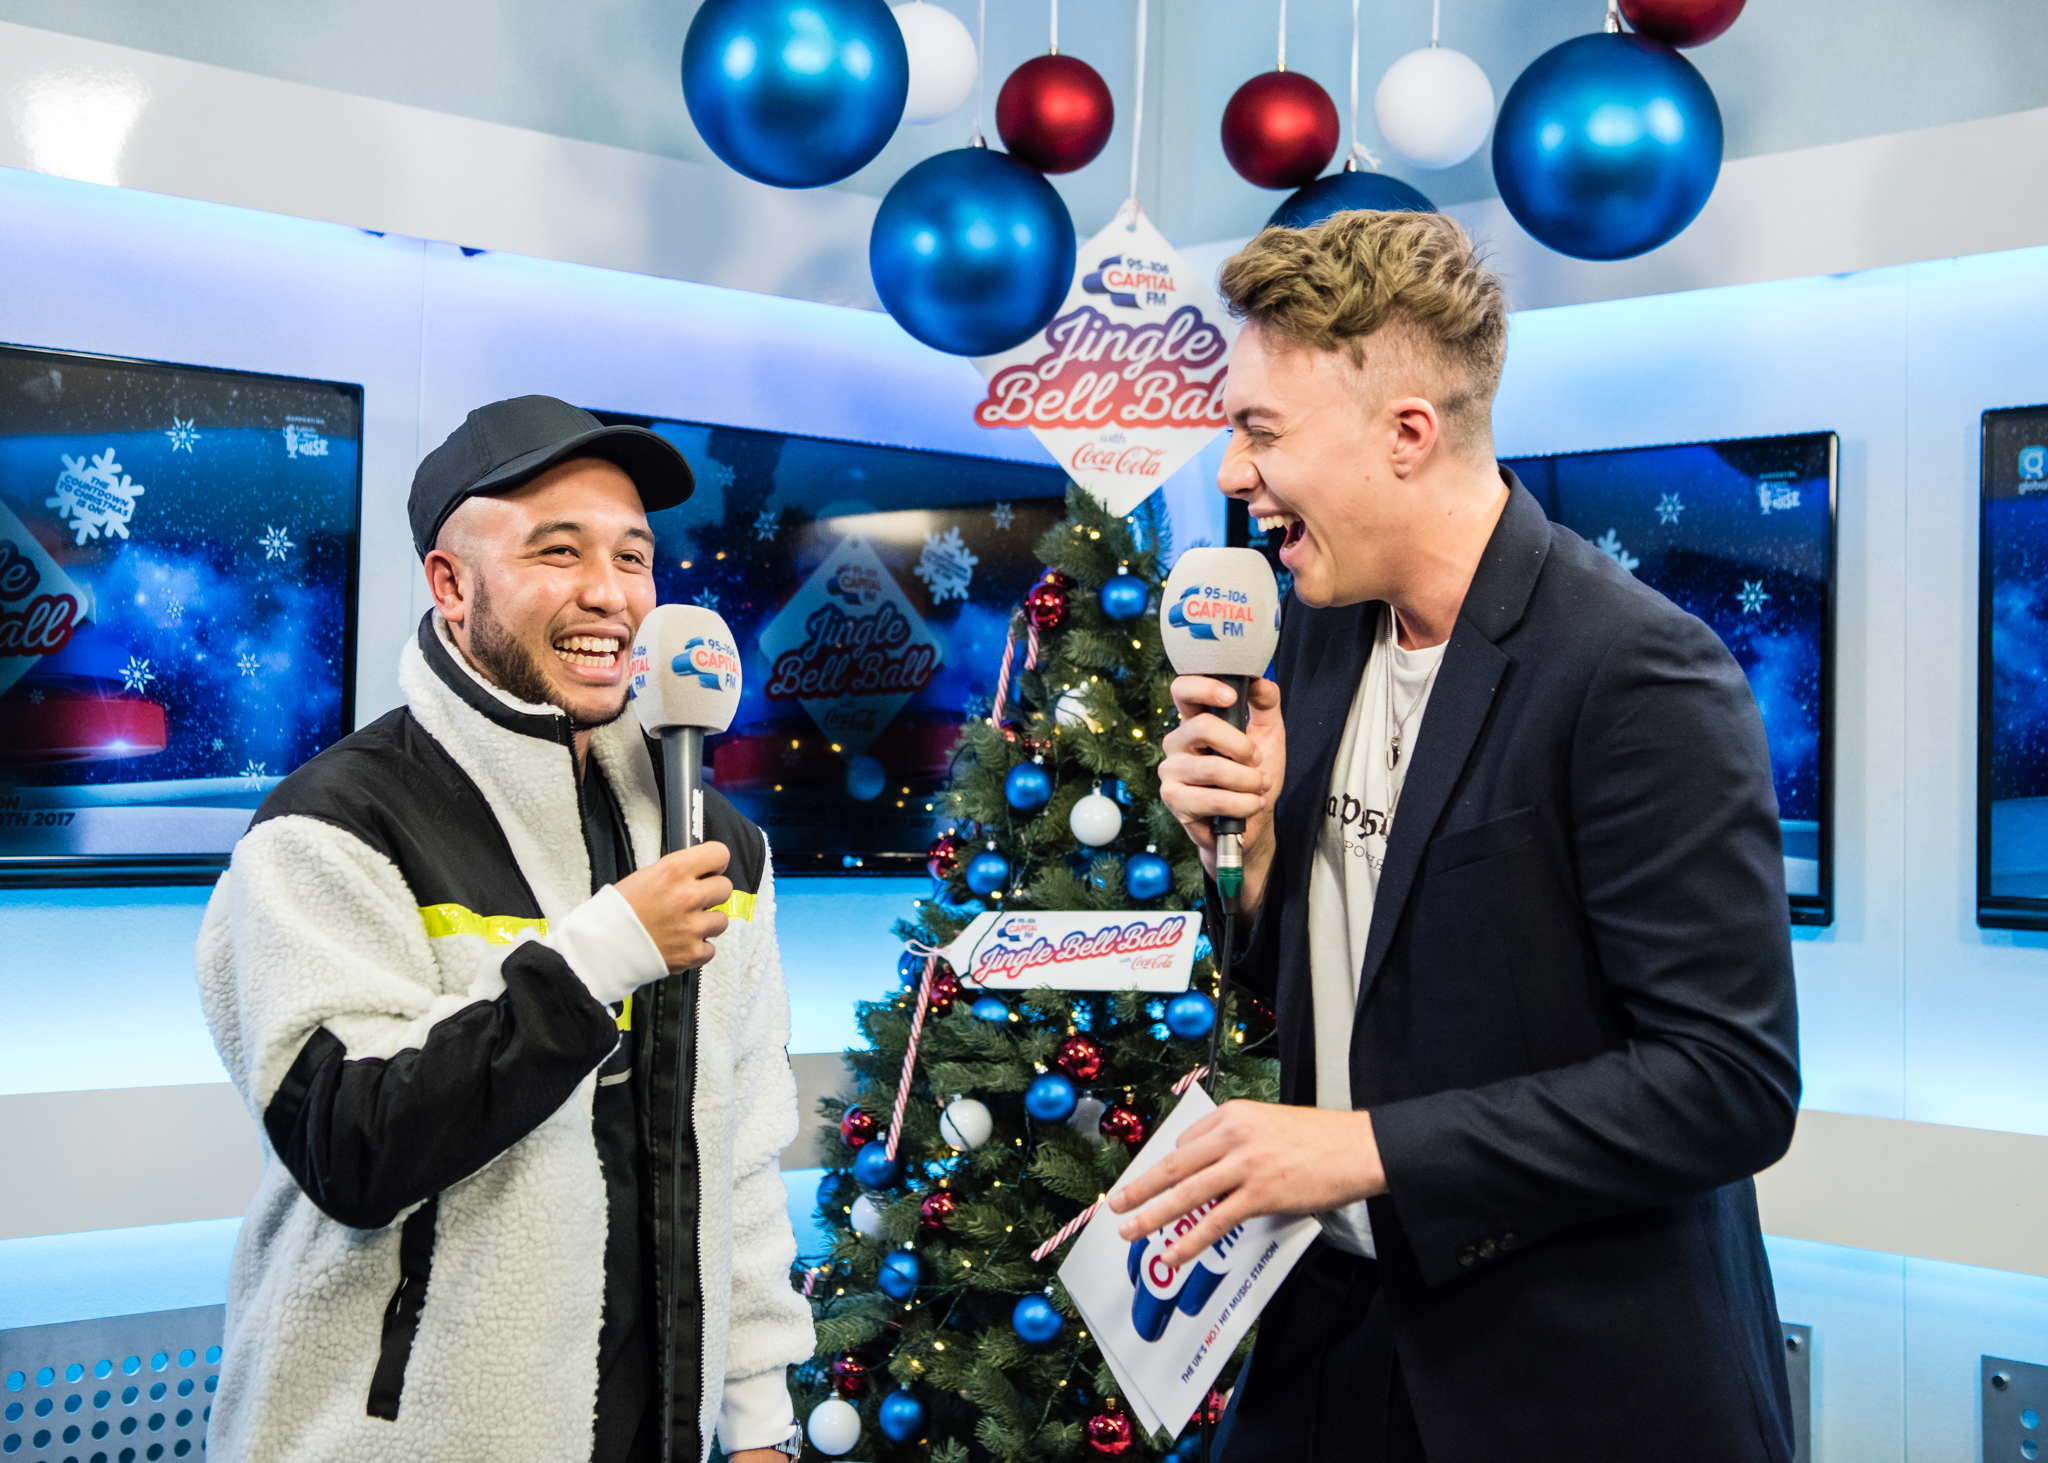 Jax Jones with Roman Kemp